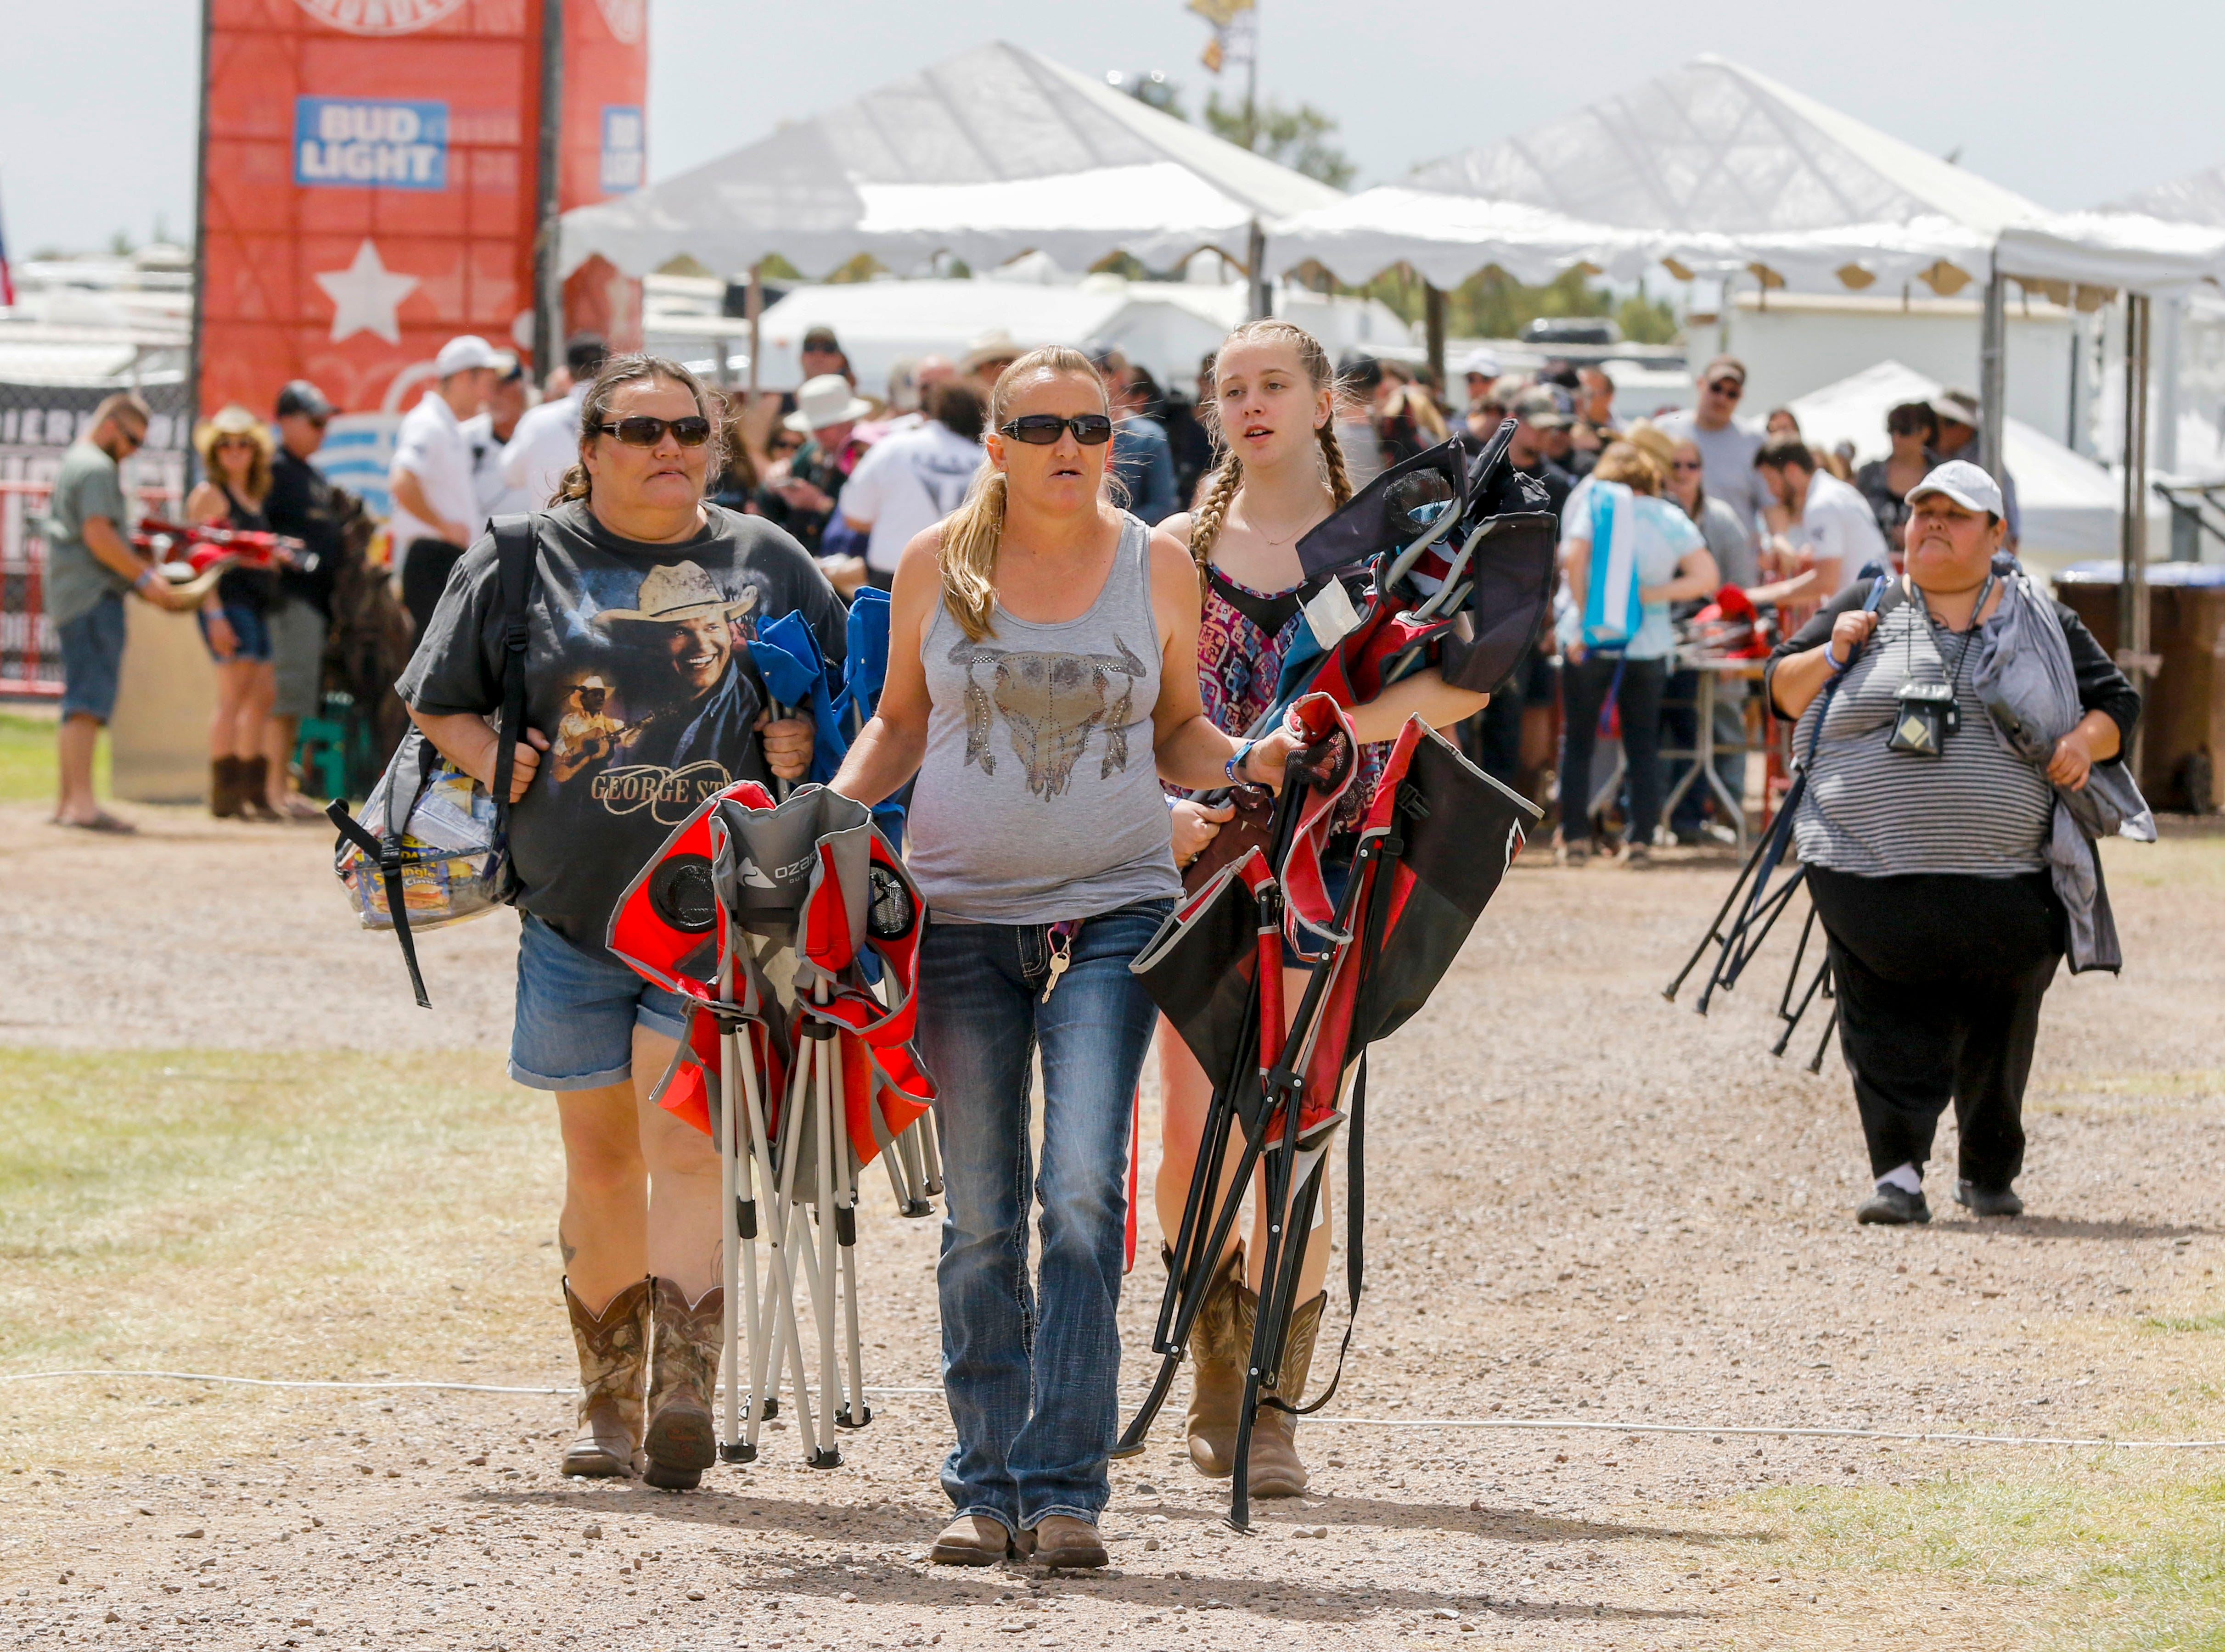 Armed with chairs, fans make their way into Country Thunder Arizona on April 11, 2019, in Florence.